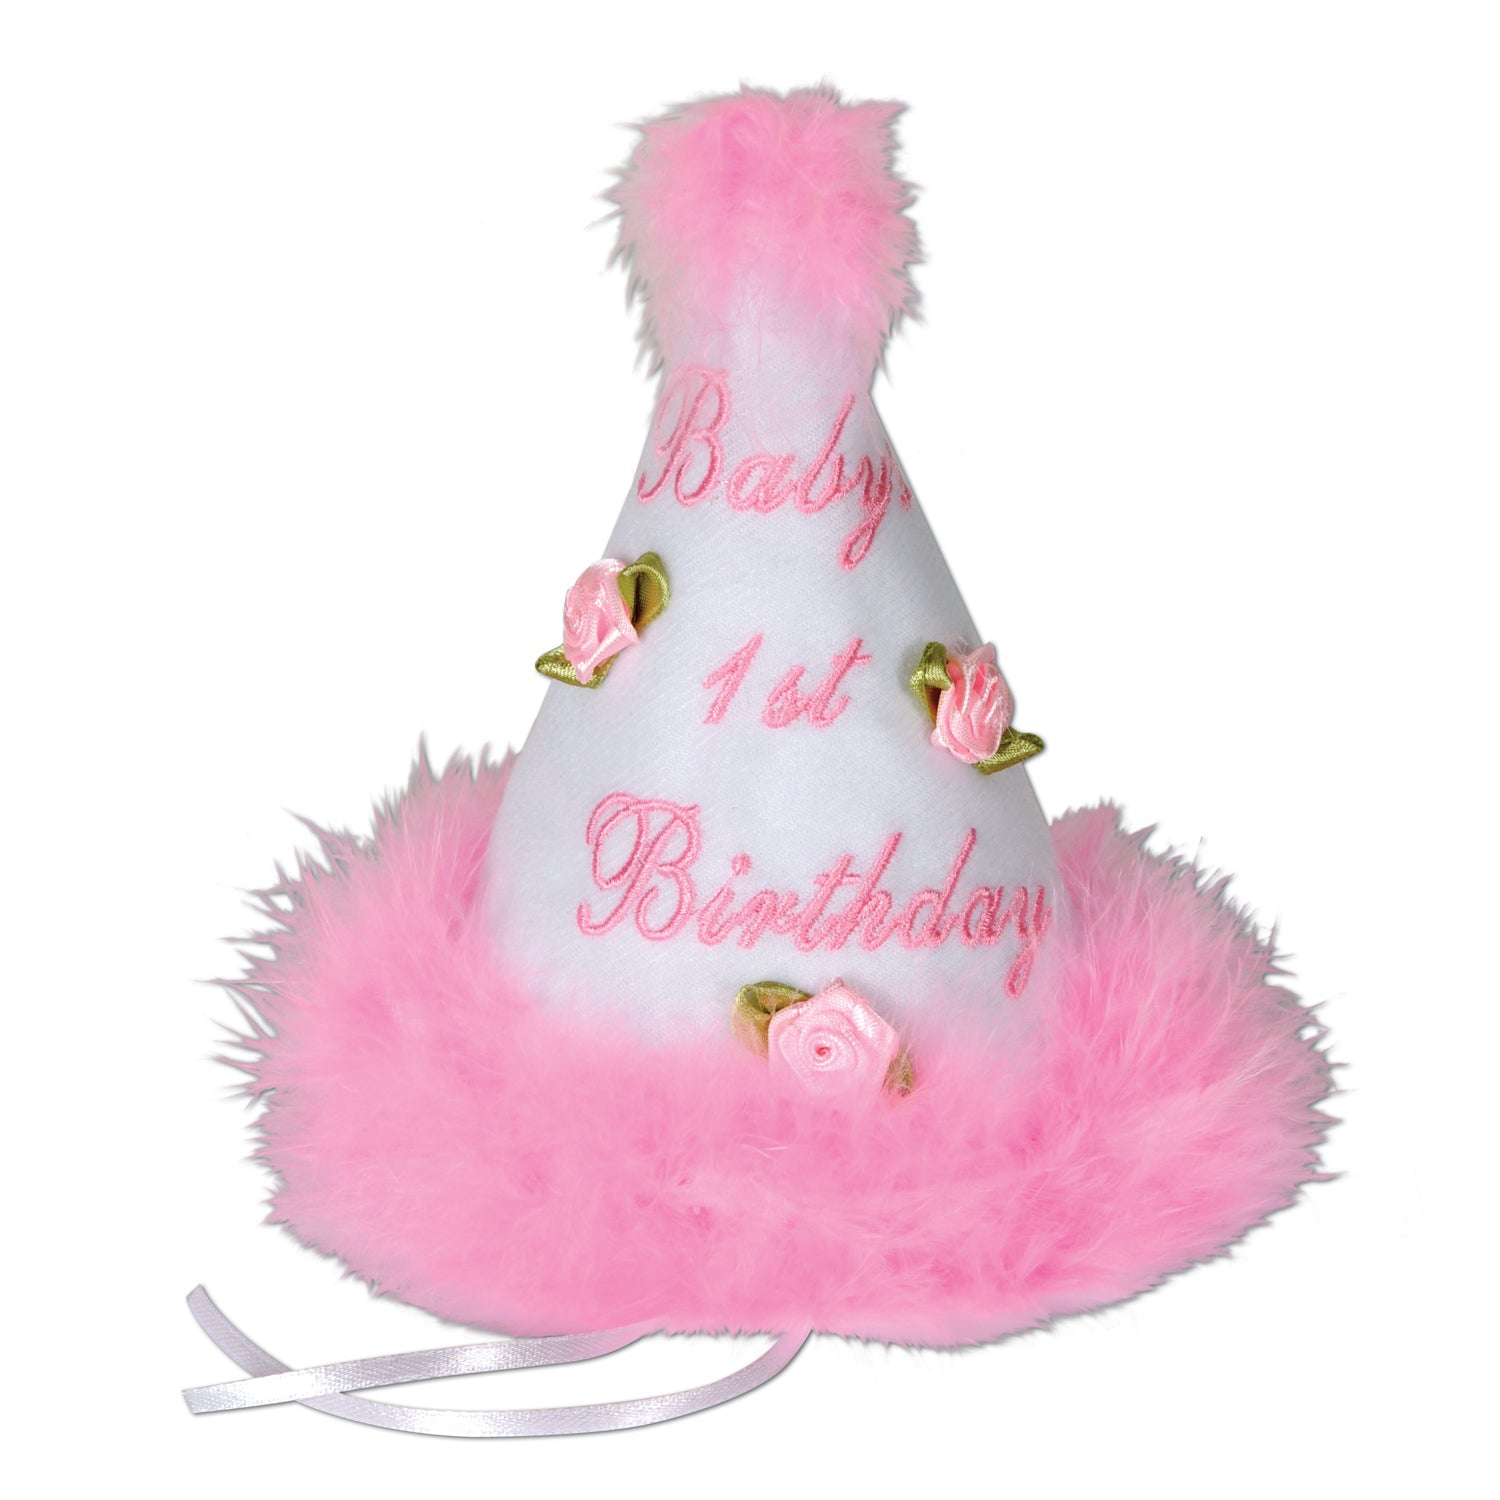 Baby's 1st Birthday Cone Hat by Beistle - 1st Birthday Party Decorations